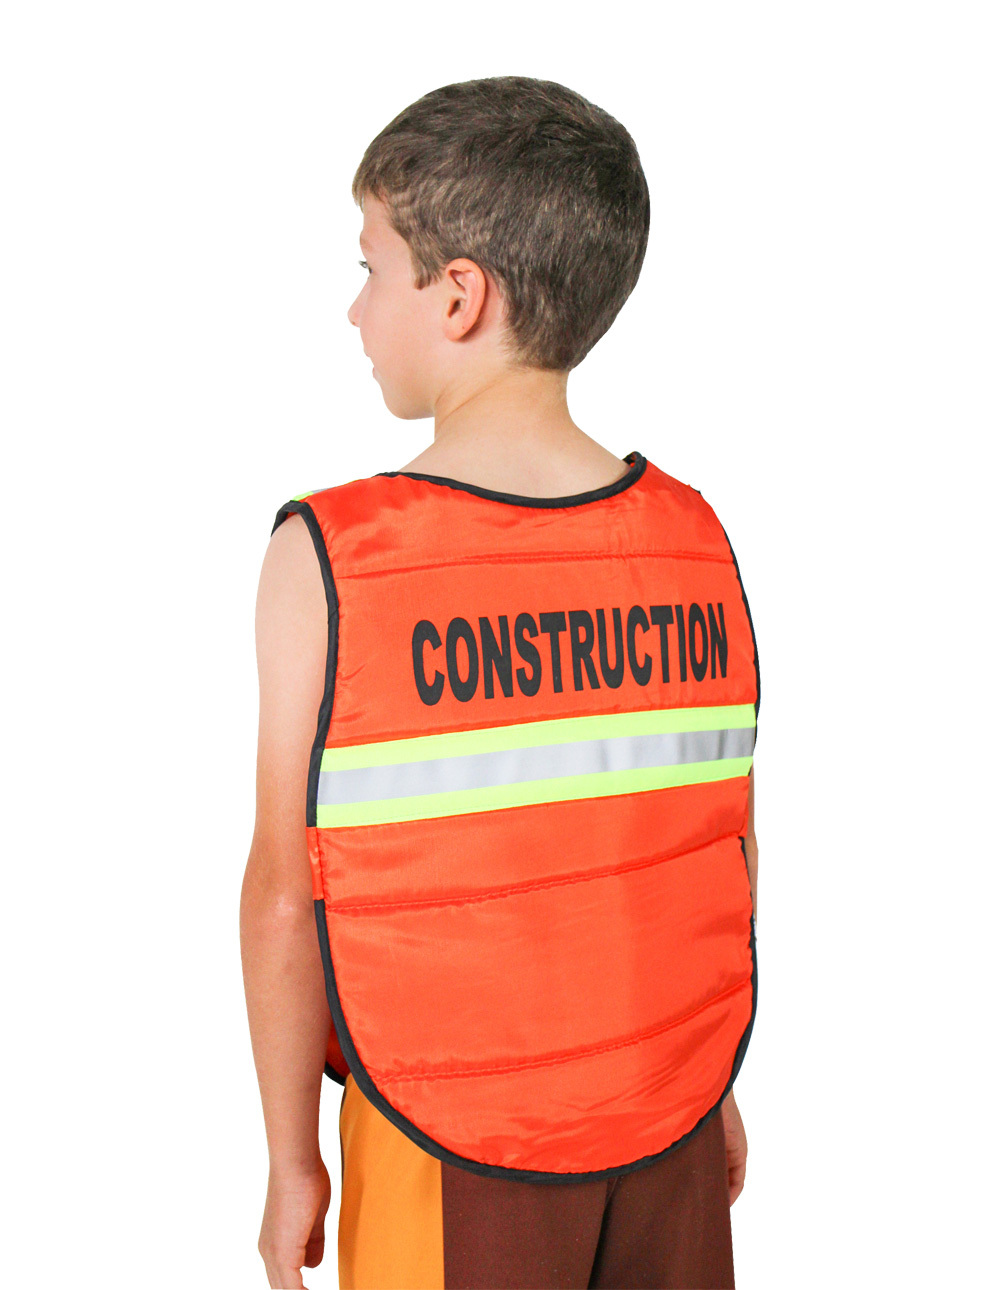 Occupation Dress Up Vest - Construction Worker